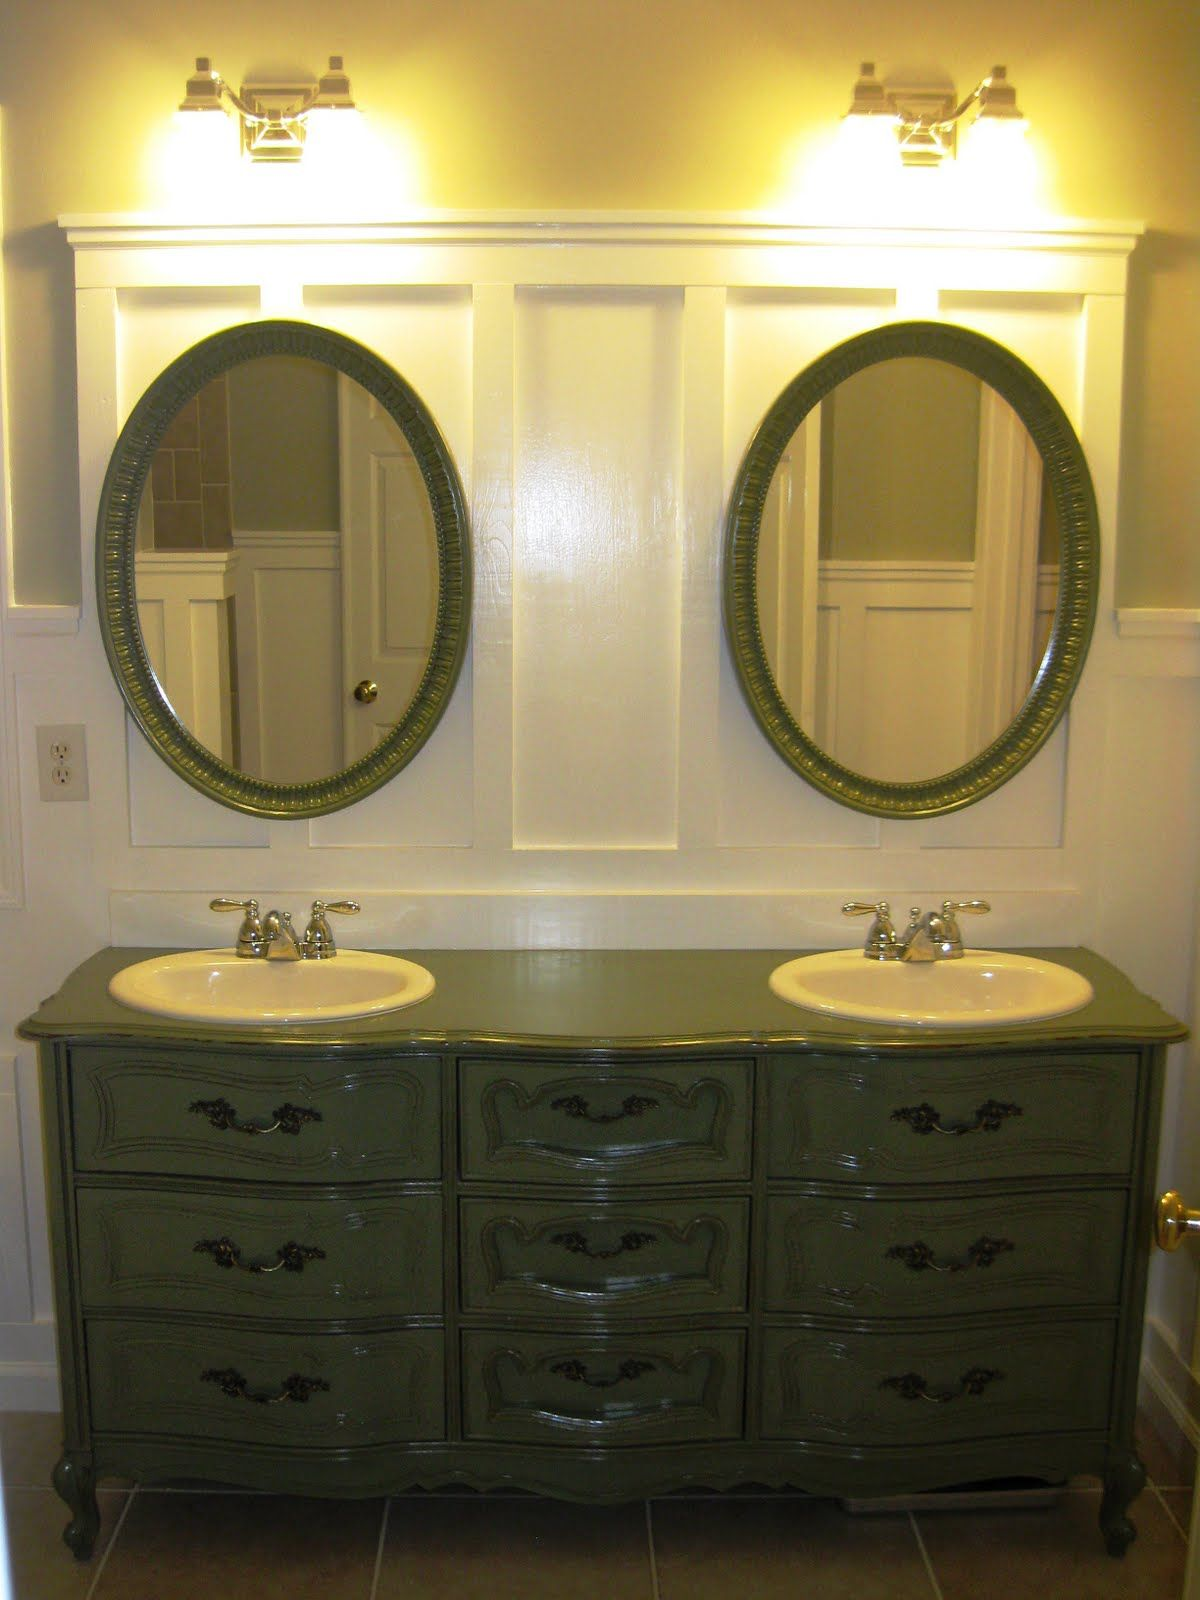 I Love Bathroom Vanities Made Out Of Old Dressers and Buffets